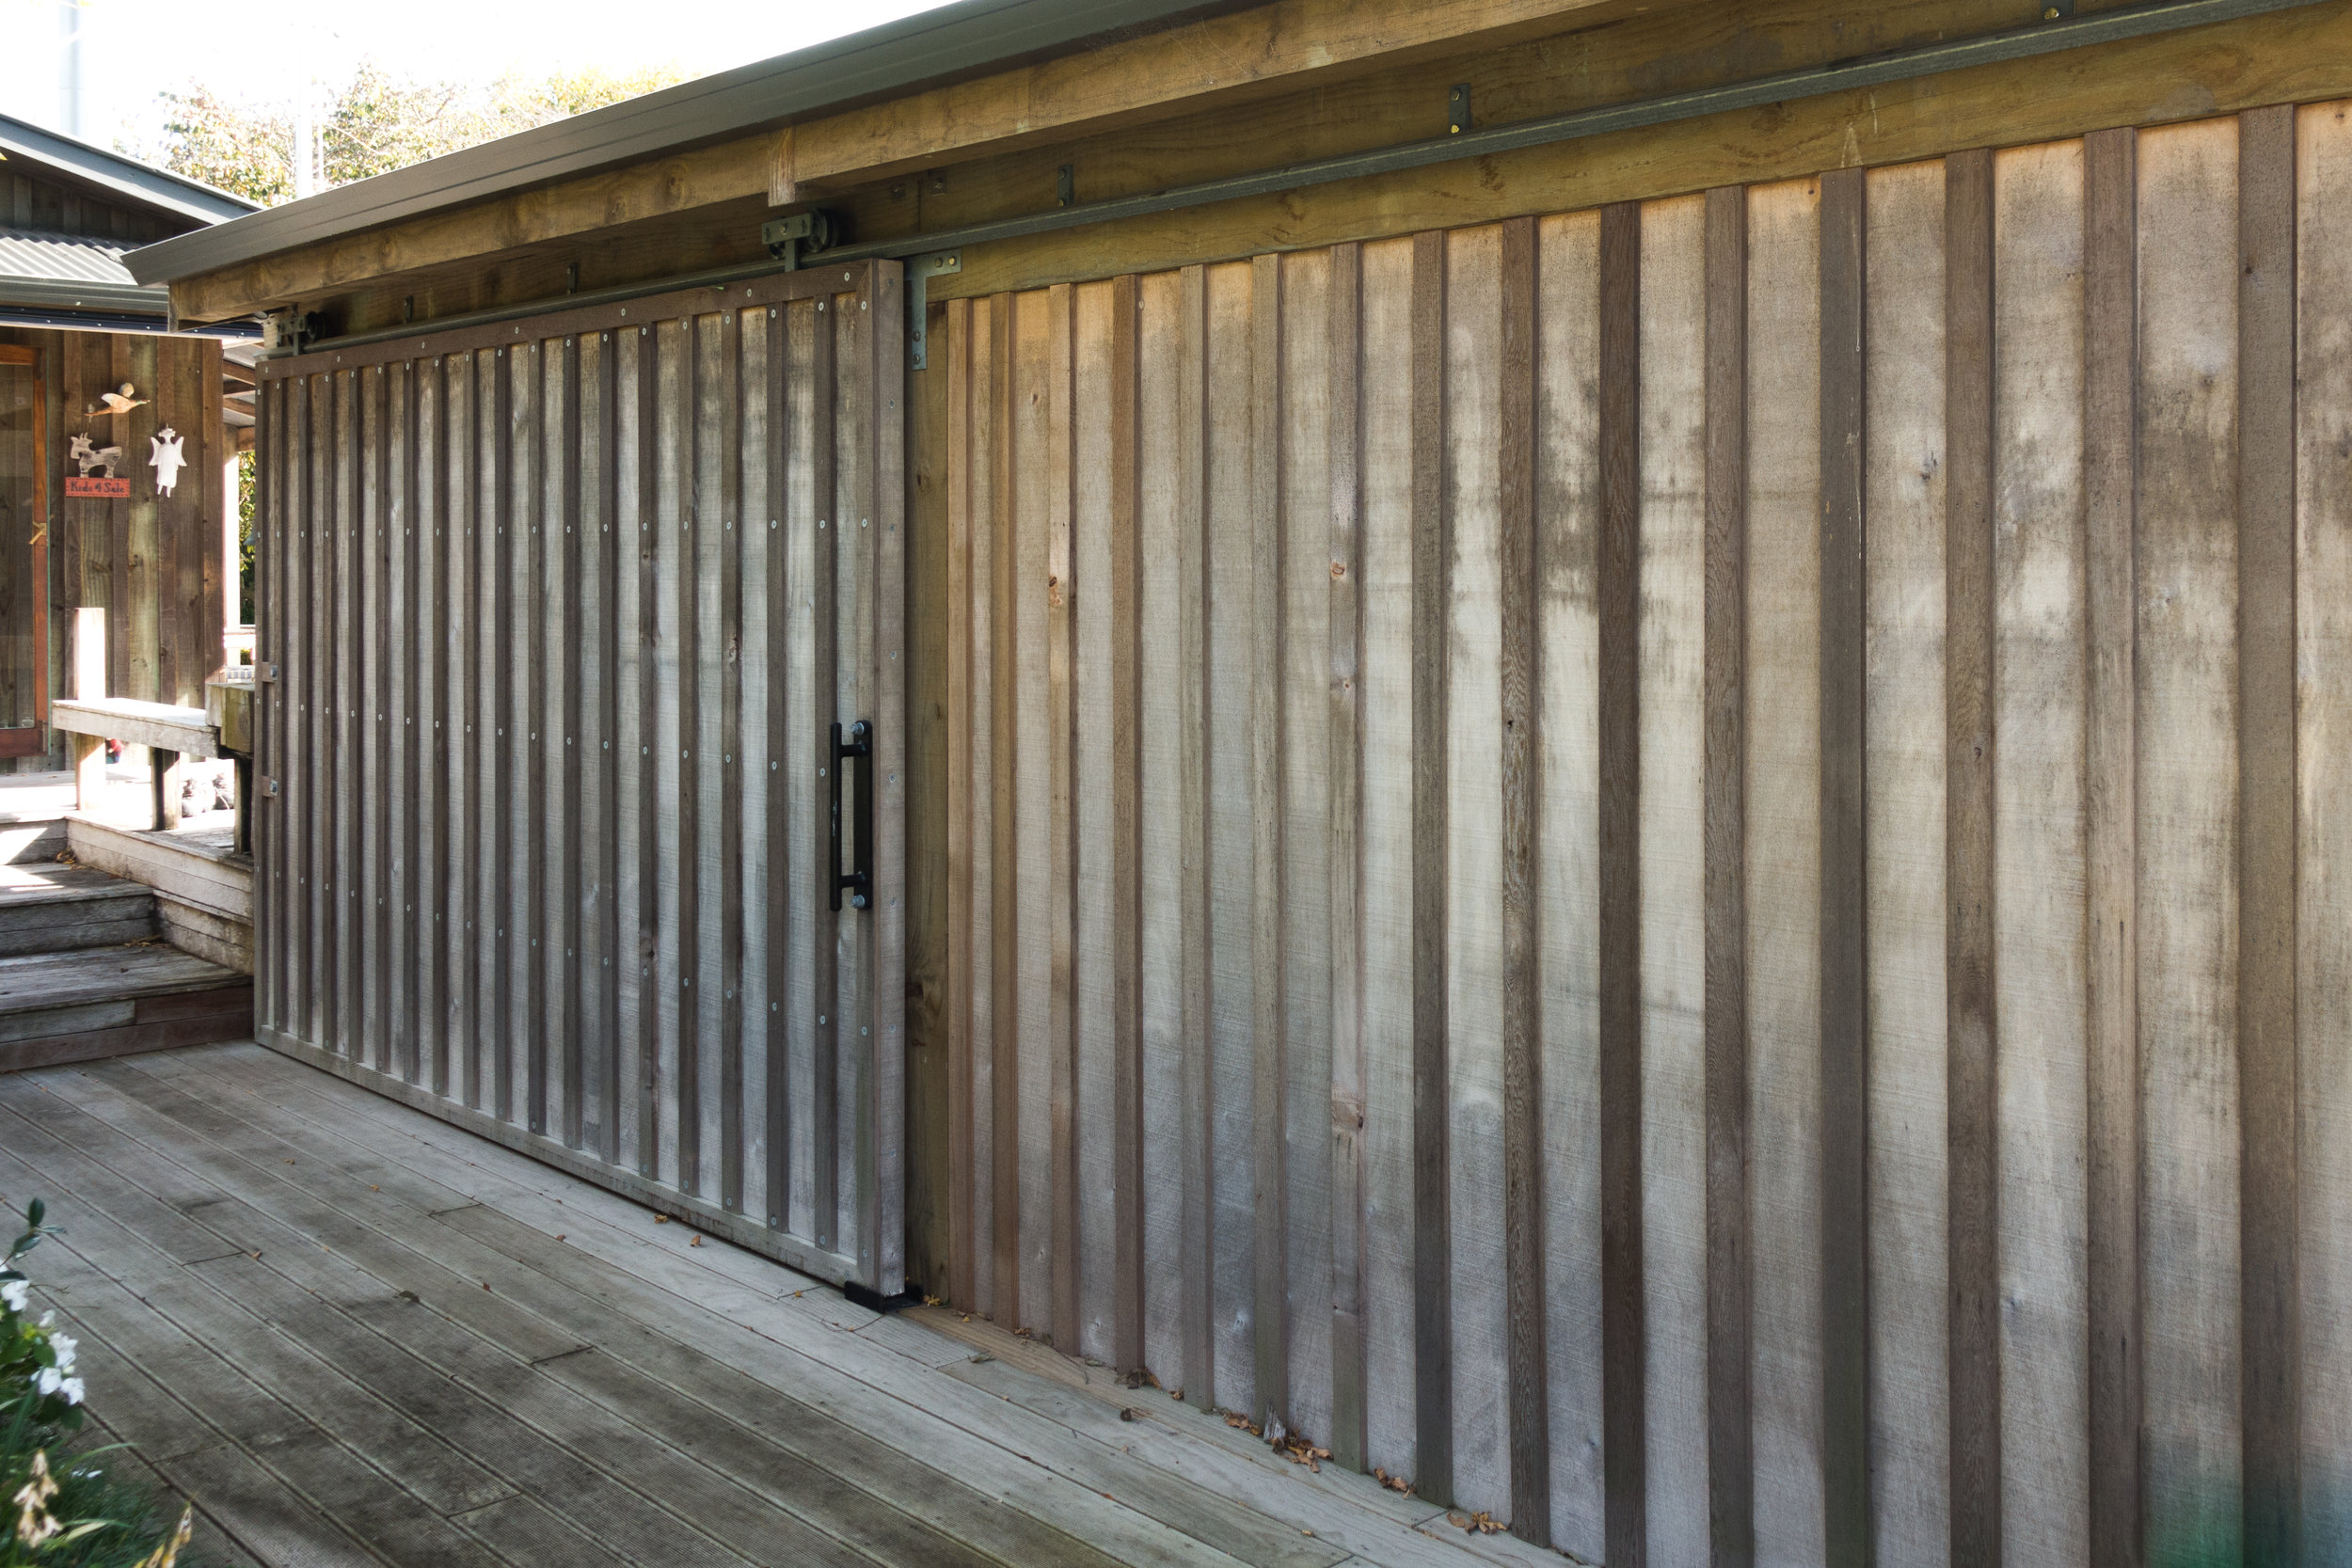 DividingDoor - Sliding door we fabricated for a clients outdoor entertainment area.